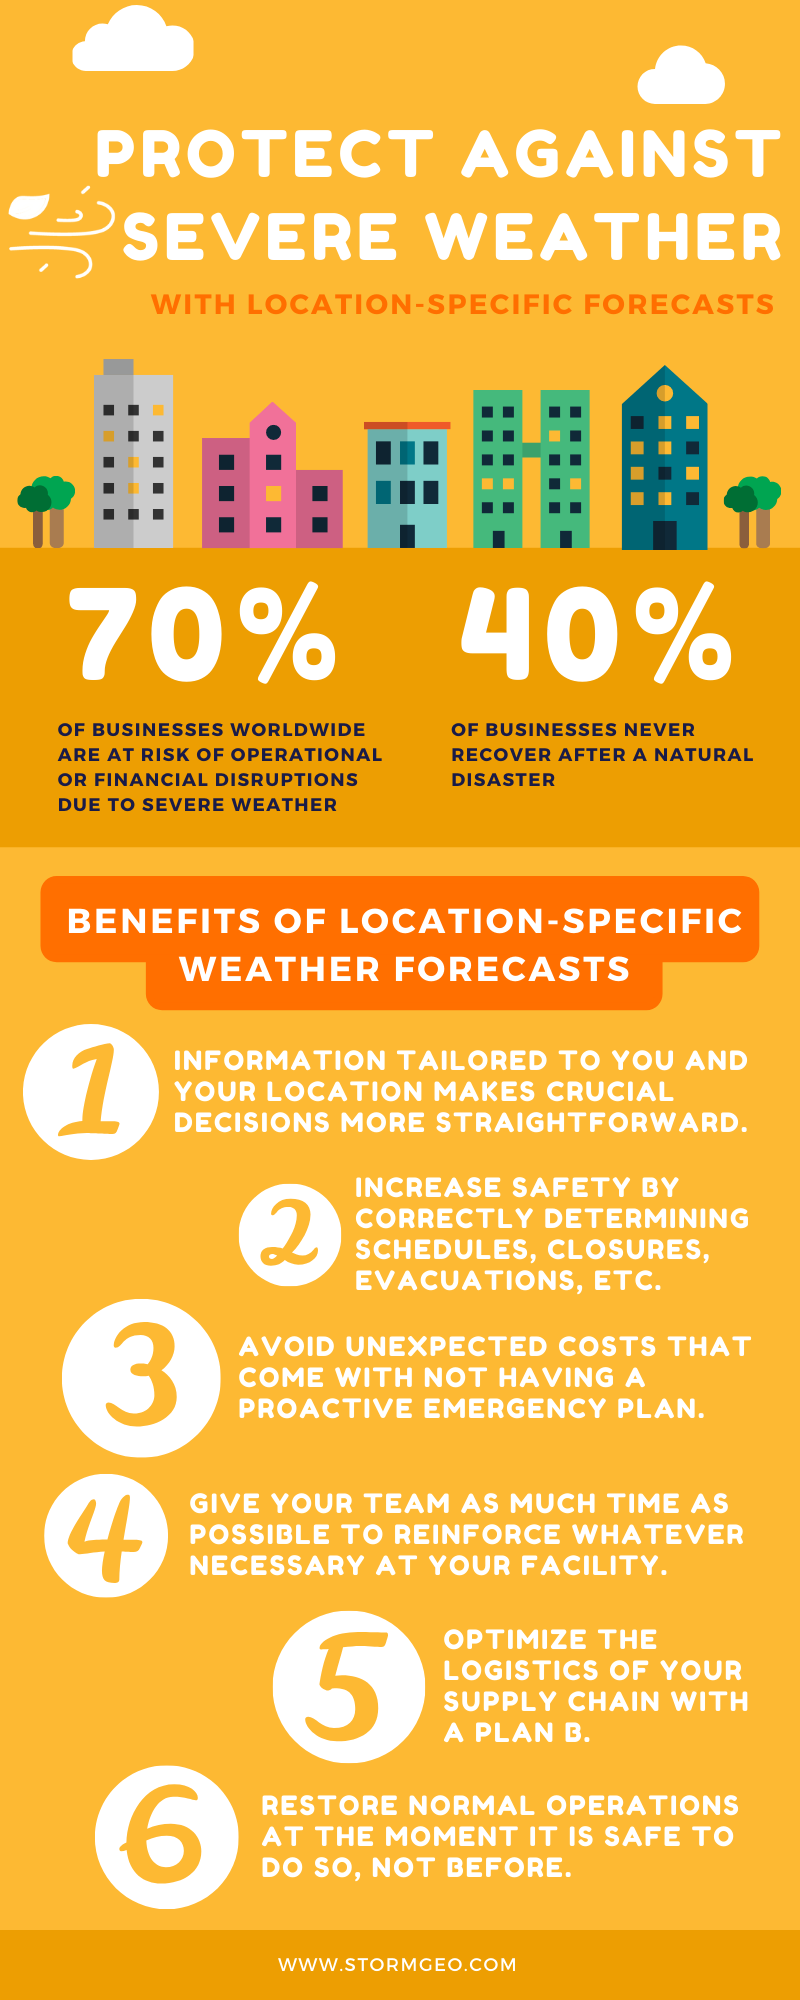 location specific weather forecasts IG3